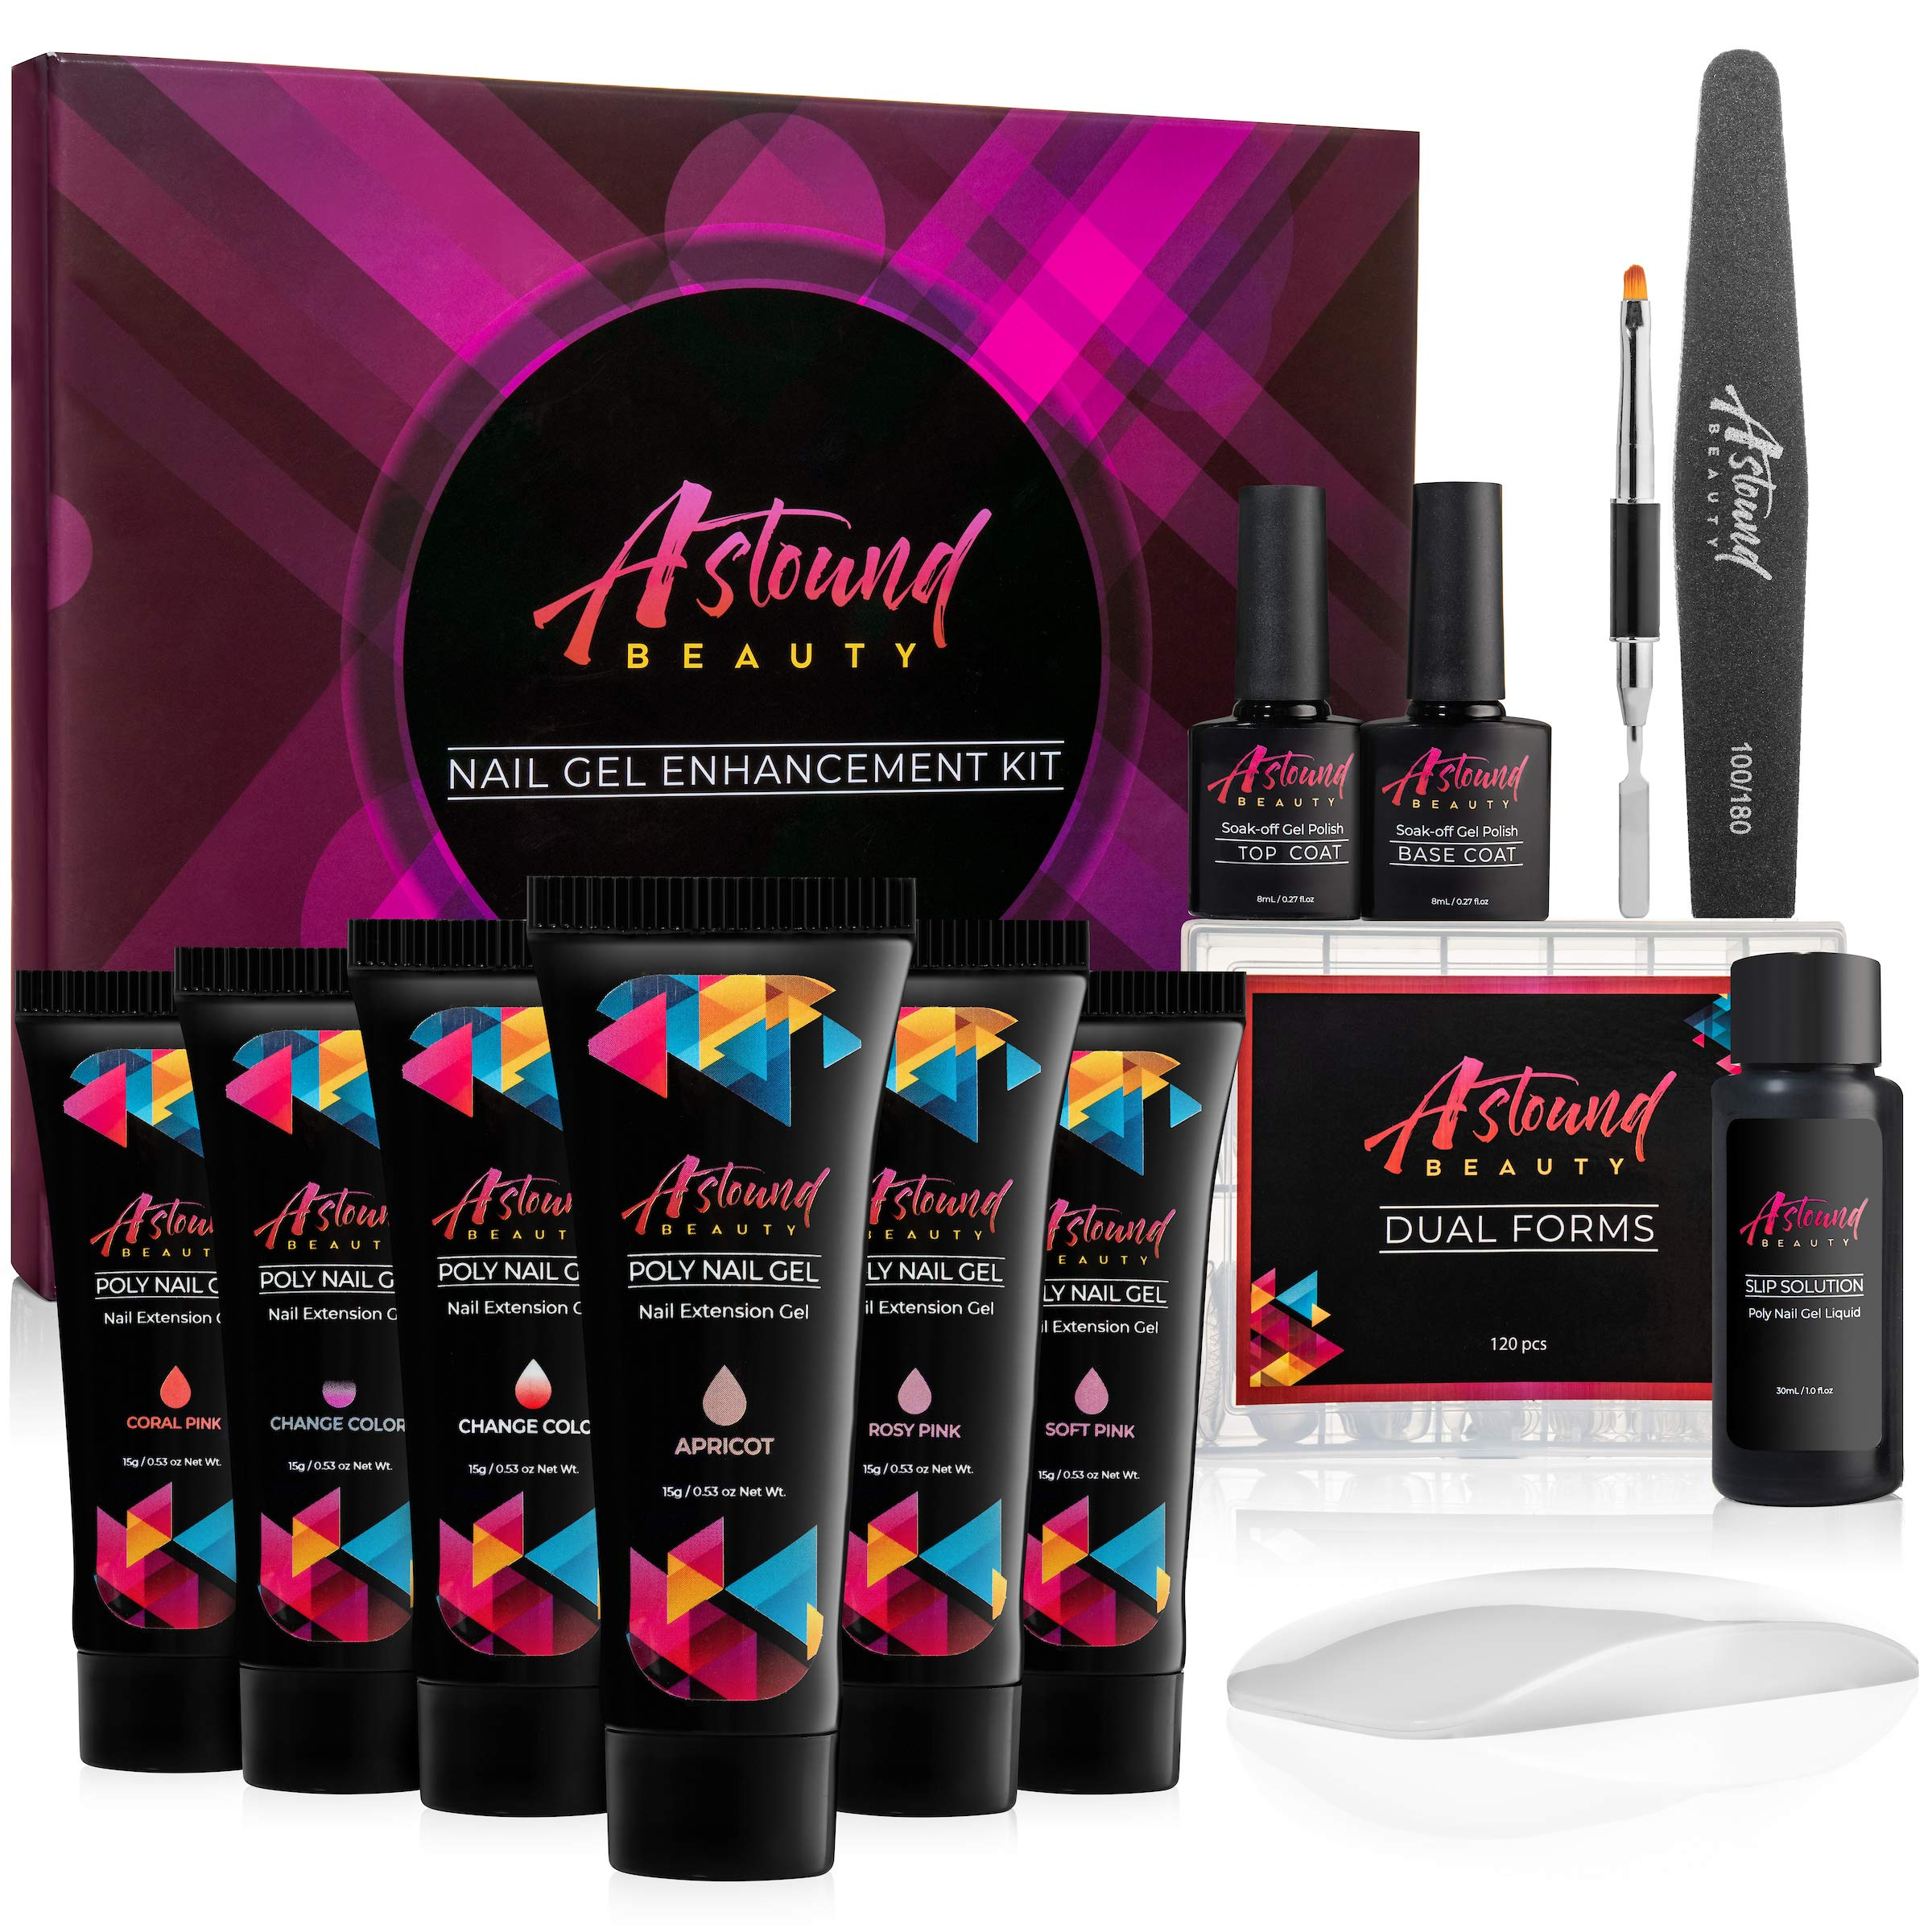 Astound Beauty Polygel Nail Kit - with LED Lamp, 2 Color Change Gel, Slip Solution - Poly Builder Gel Nail Starter Kit - Professional Nail Extension Gel All-in-One Kit by Astound Beauty